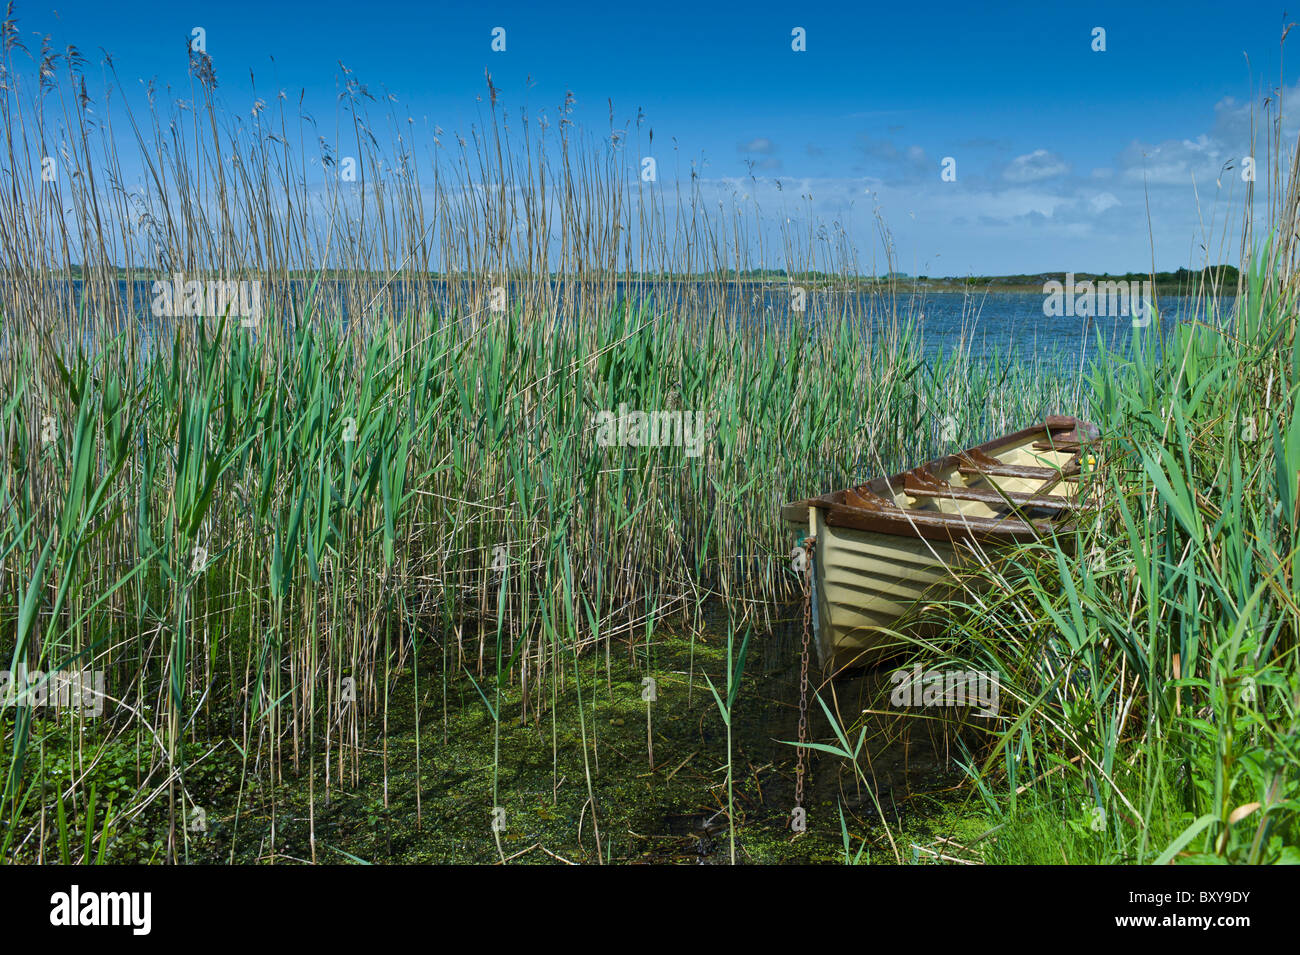 Boat among the reeds at Lough Muckanagh, County Clare, West of Ireland - Stock Image